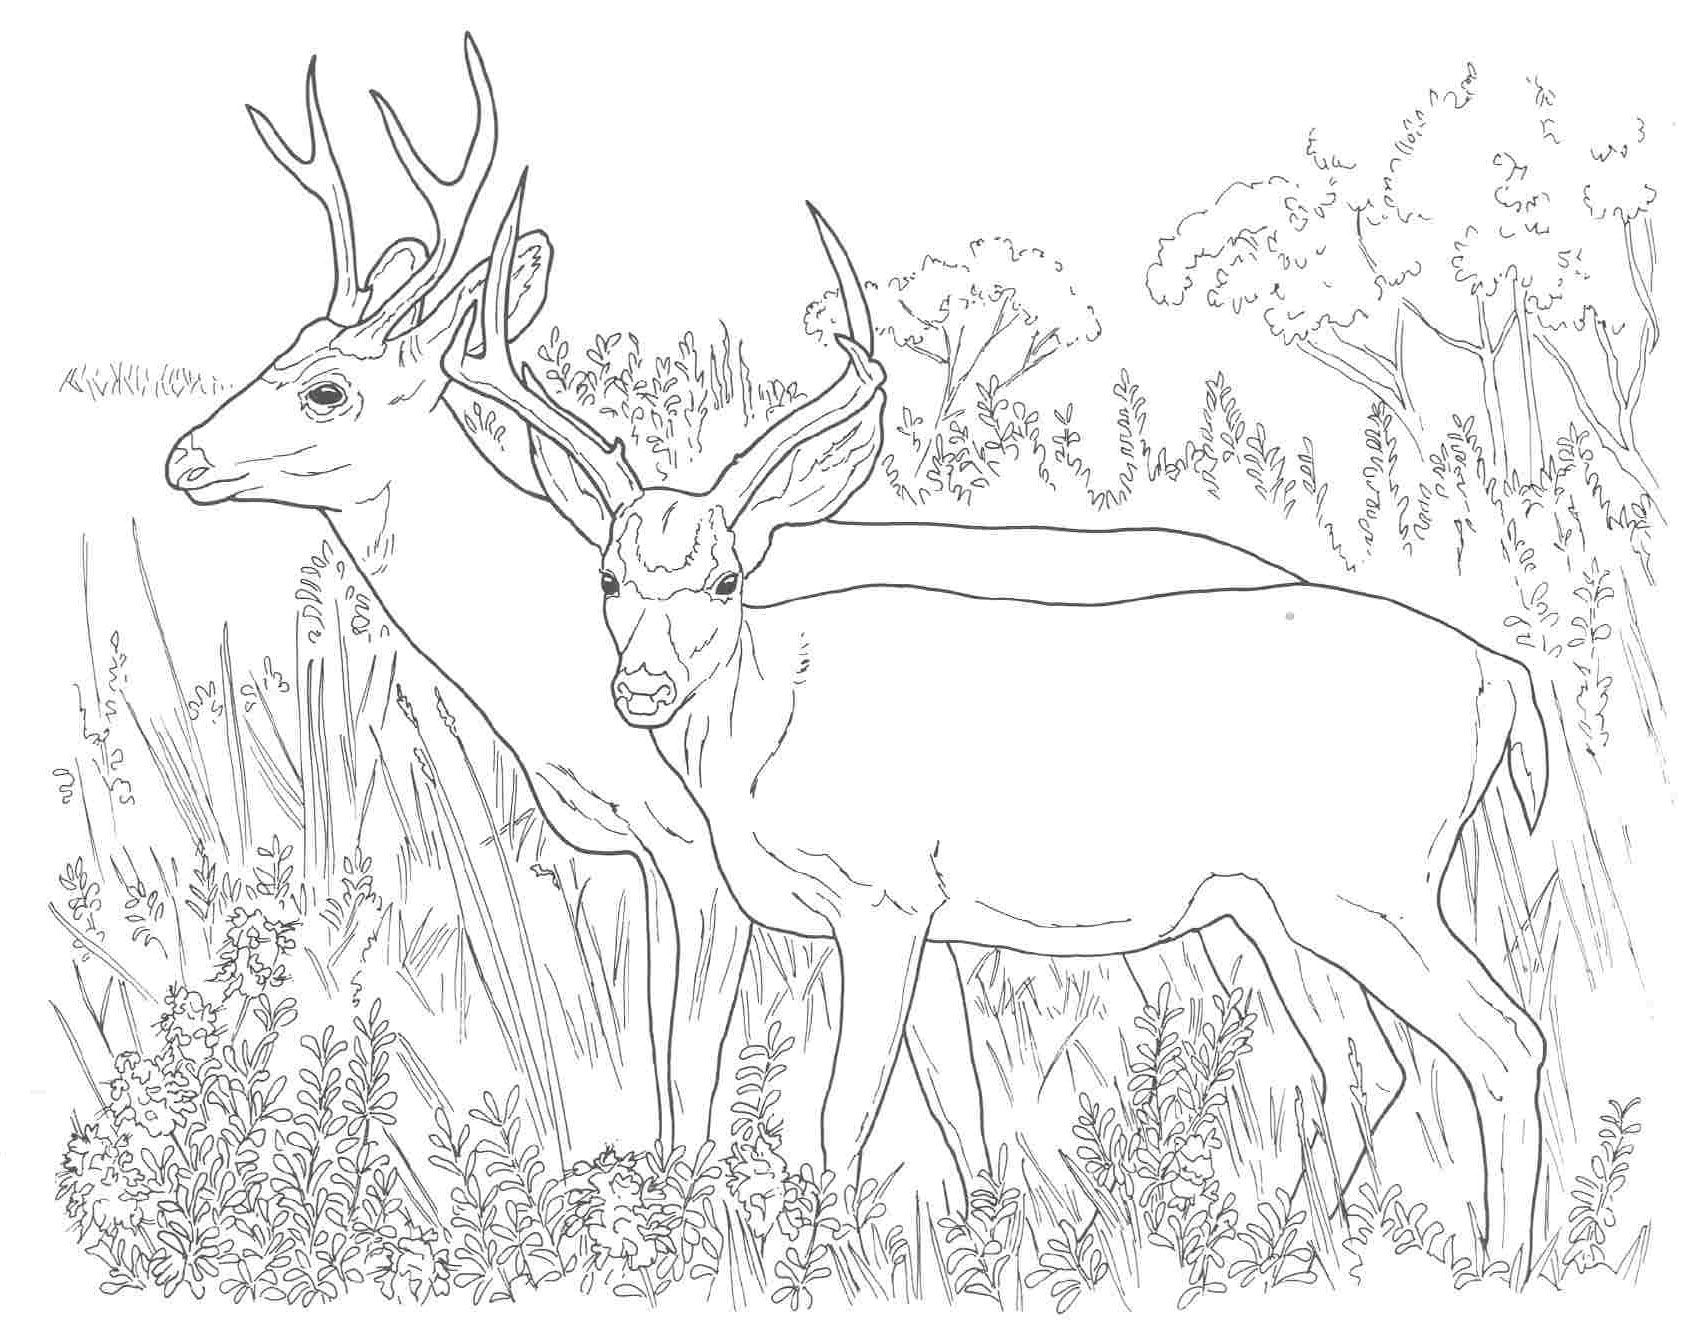 Free coloring pages hunting - Deer Hunting Coloring Pages To Print High Quality Coloring Pages